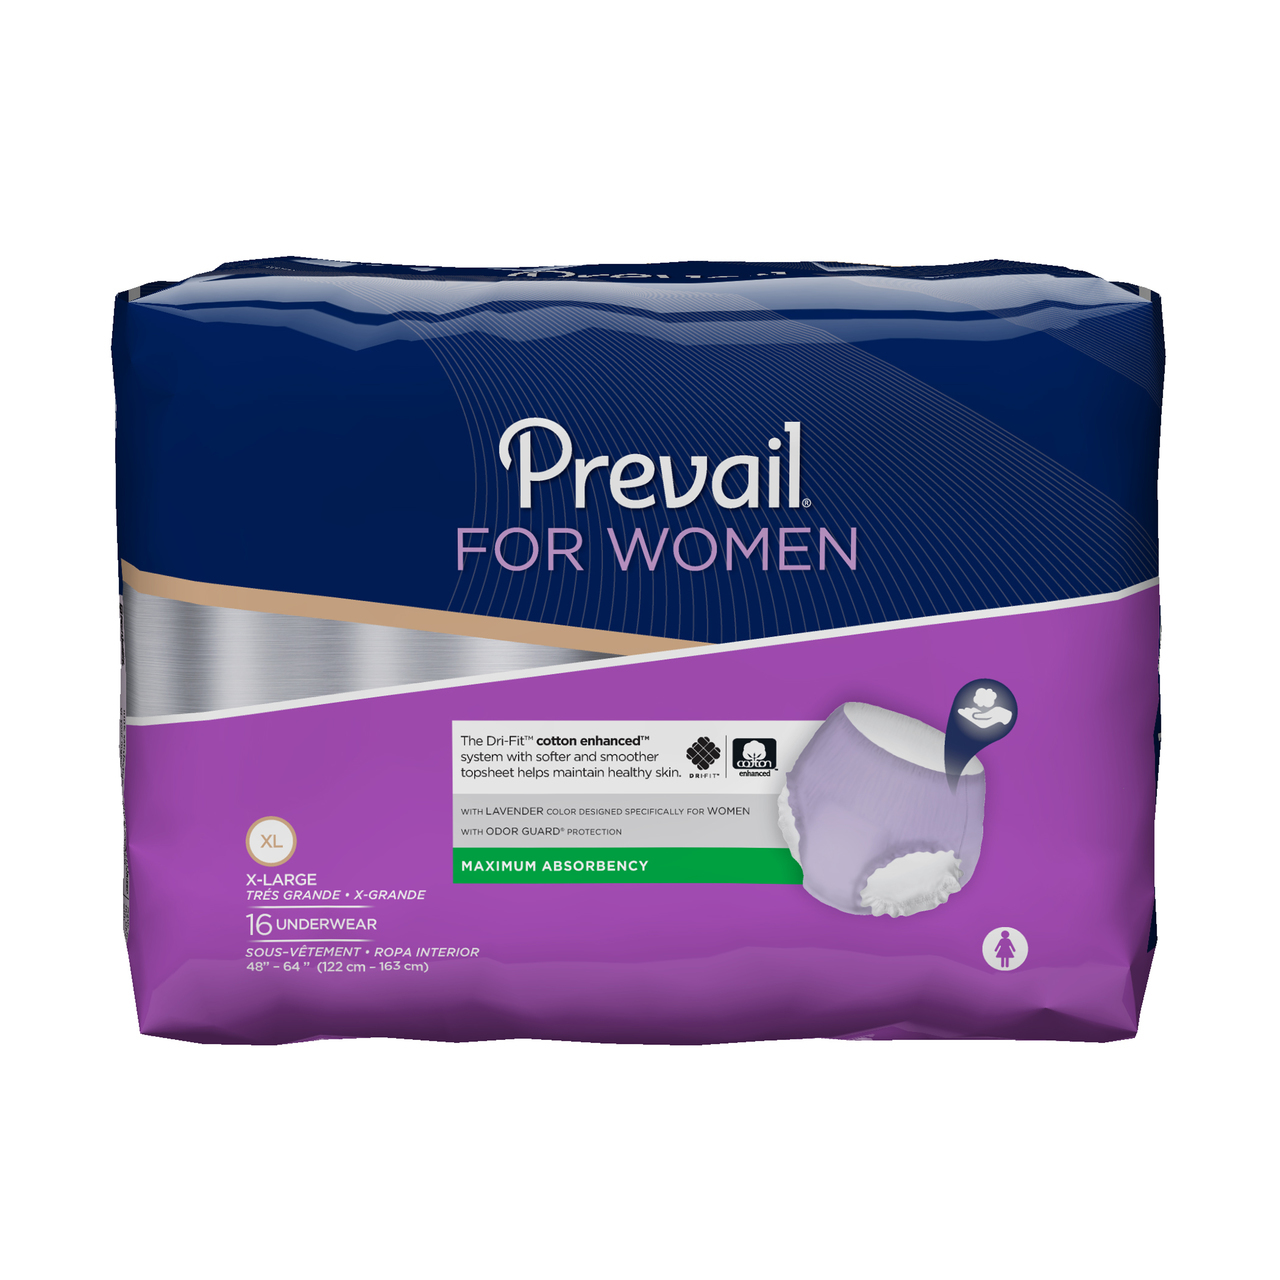 Prevail Underwear for Women,  X-Large (48-64 Inch Waist) - Pack of 16